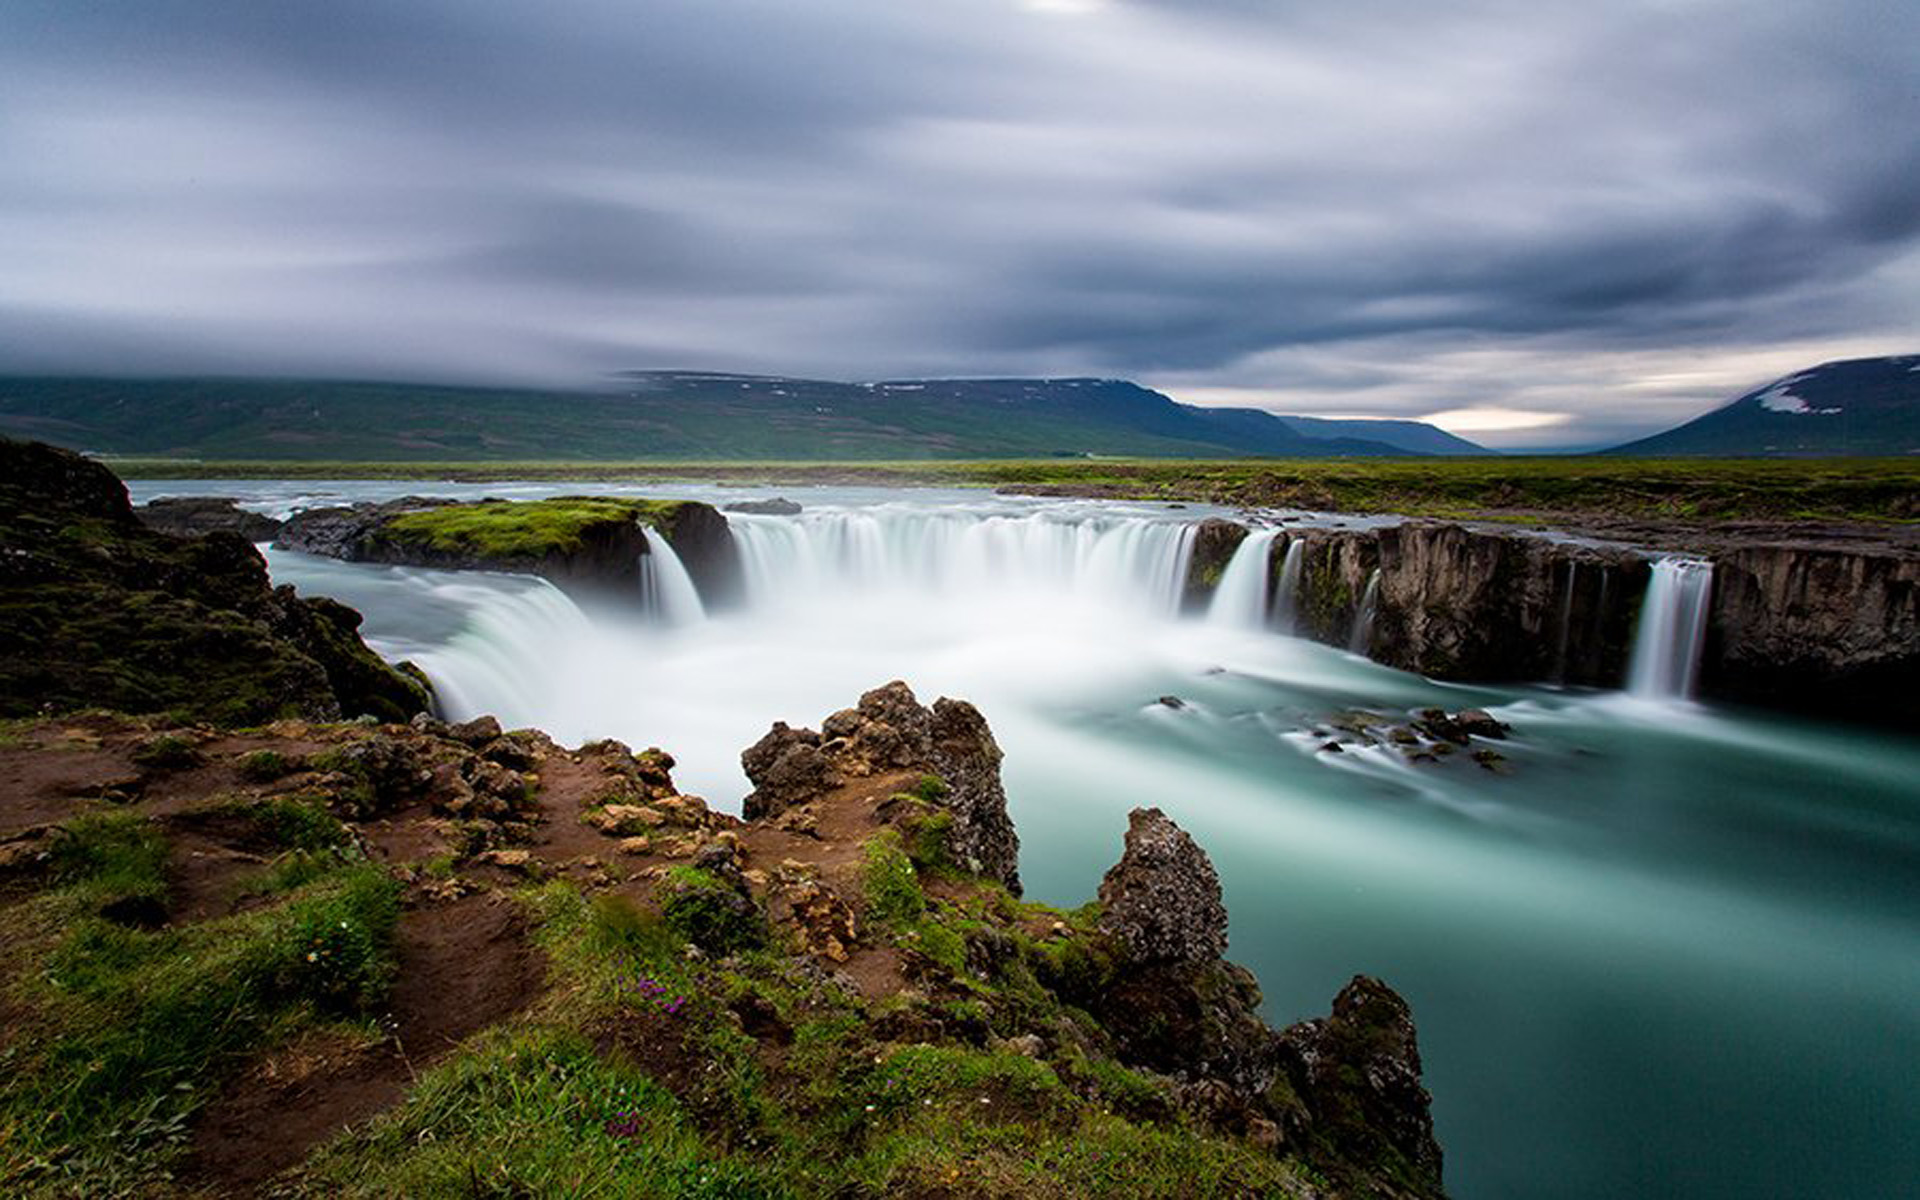 Travel Background Hd Wallpapers Free Niagra Falls Go 240 Afoss Falls Iceland Full Hd Wallpapers 1920x1200